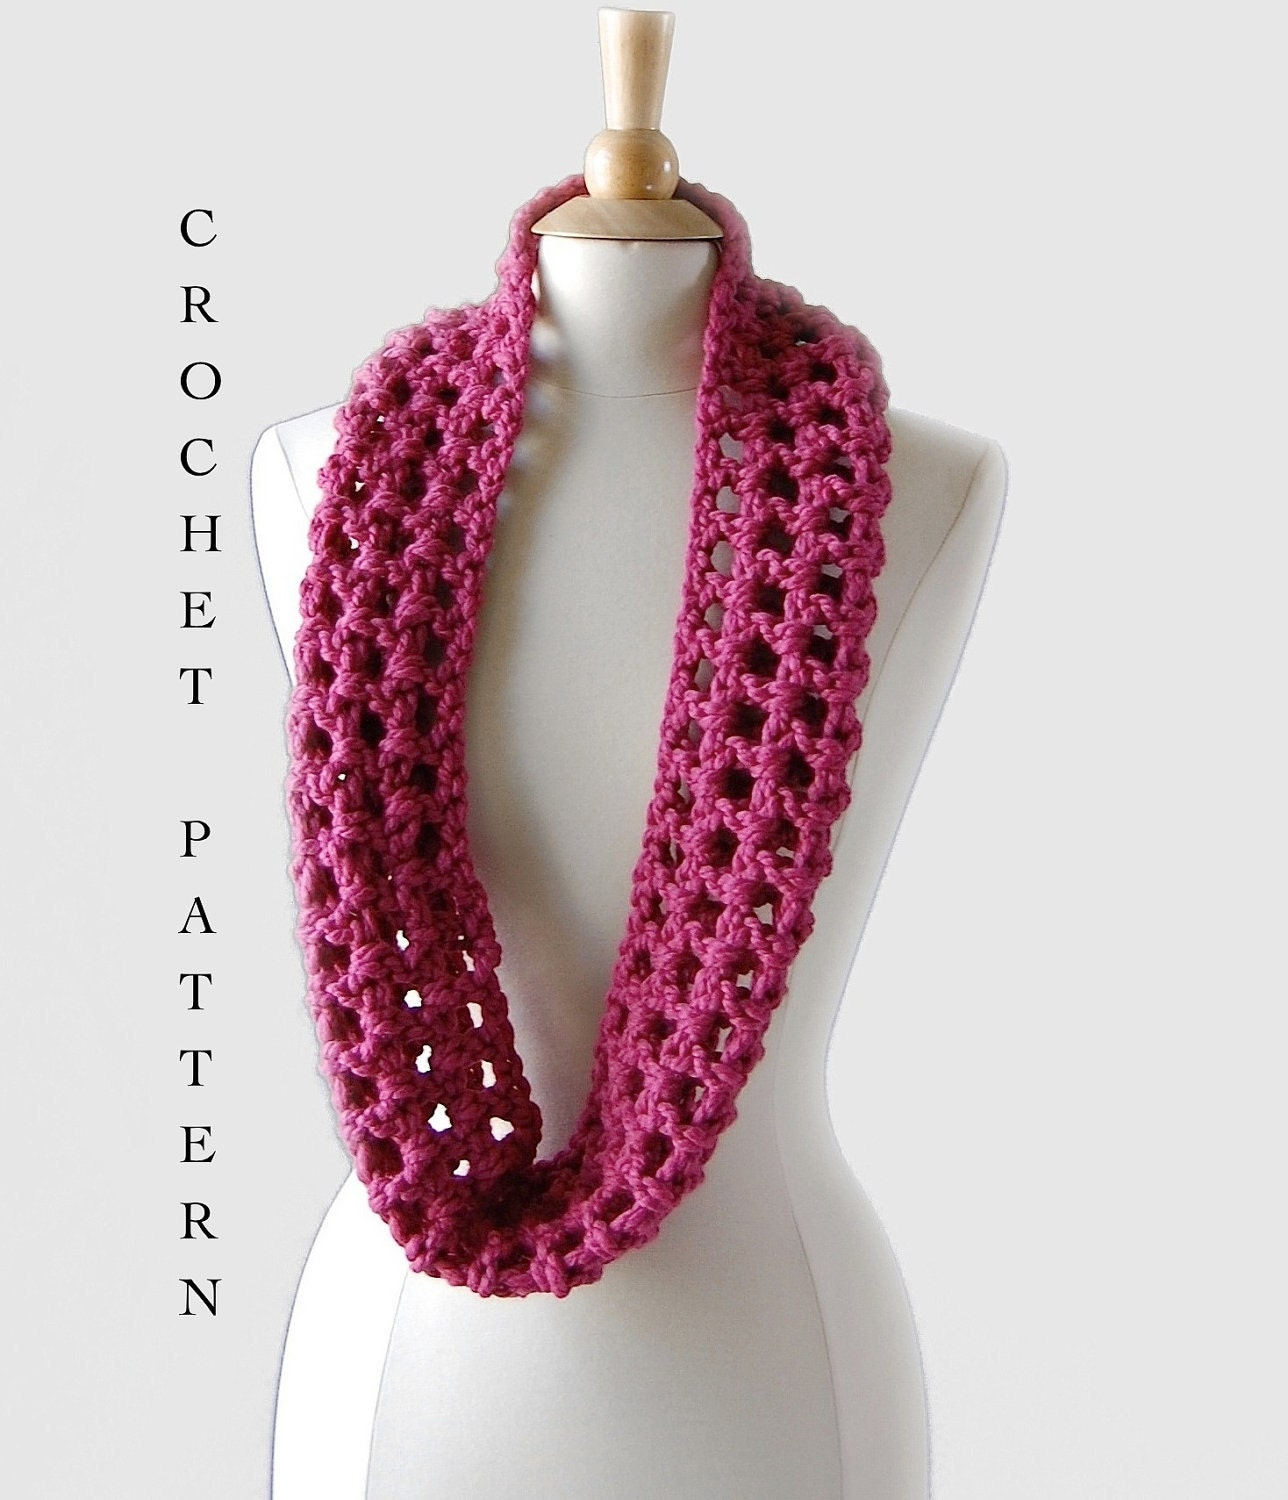 Simple Knitting Pattern For Infinity Scarf : Easy Crochet Infinity Scarf Pattern Crochet by CrochetByMichele